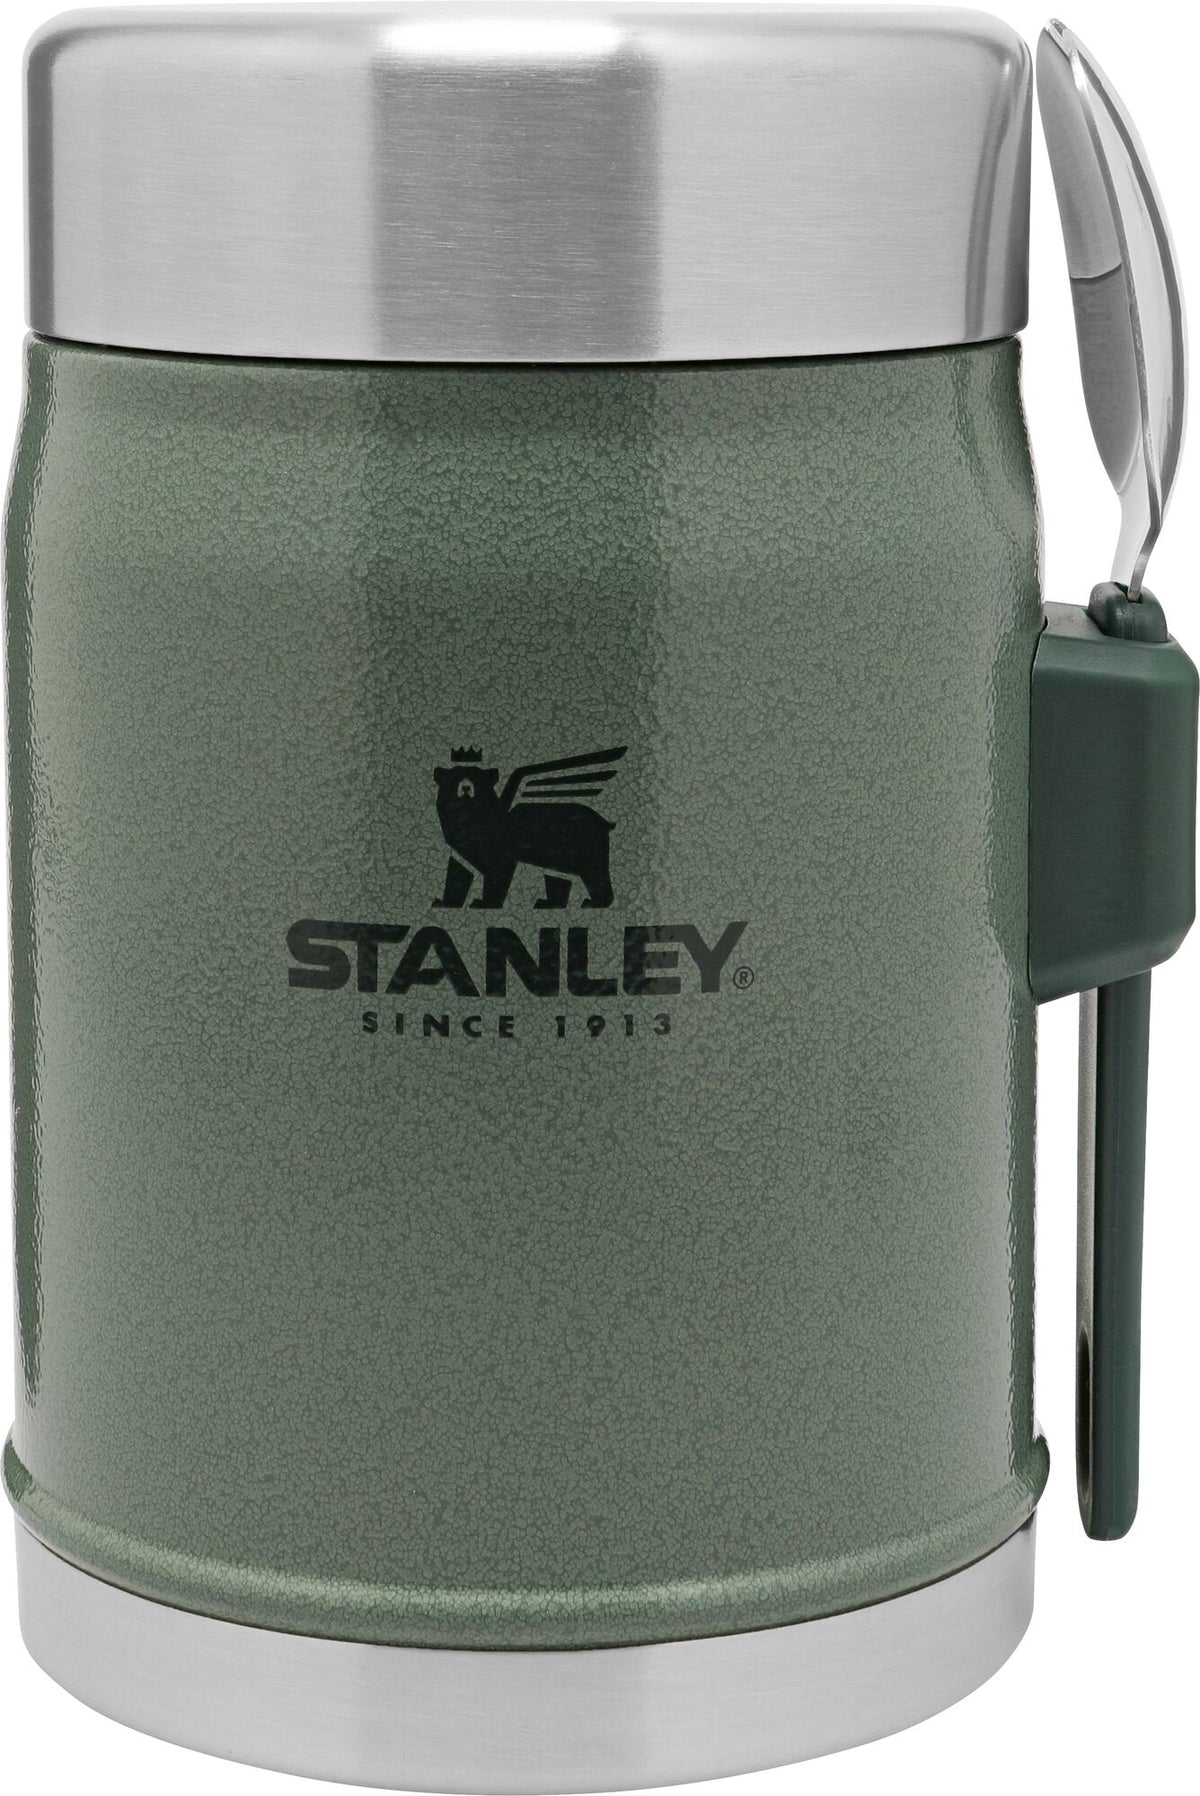 Stanley-Classic Series Vacuum Food Jar 400ml-Vacuum Food Jar-Hammertone Green-Gearaholic.com.sg